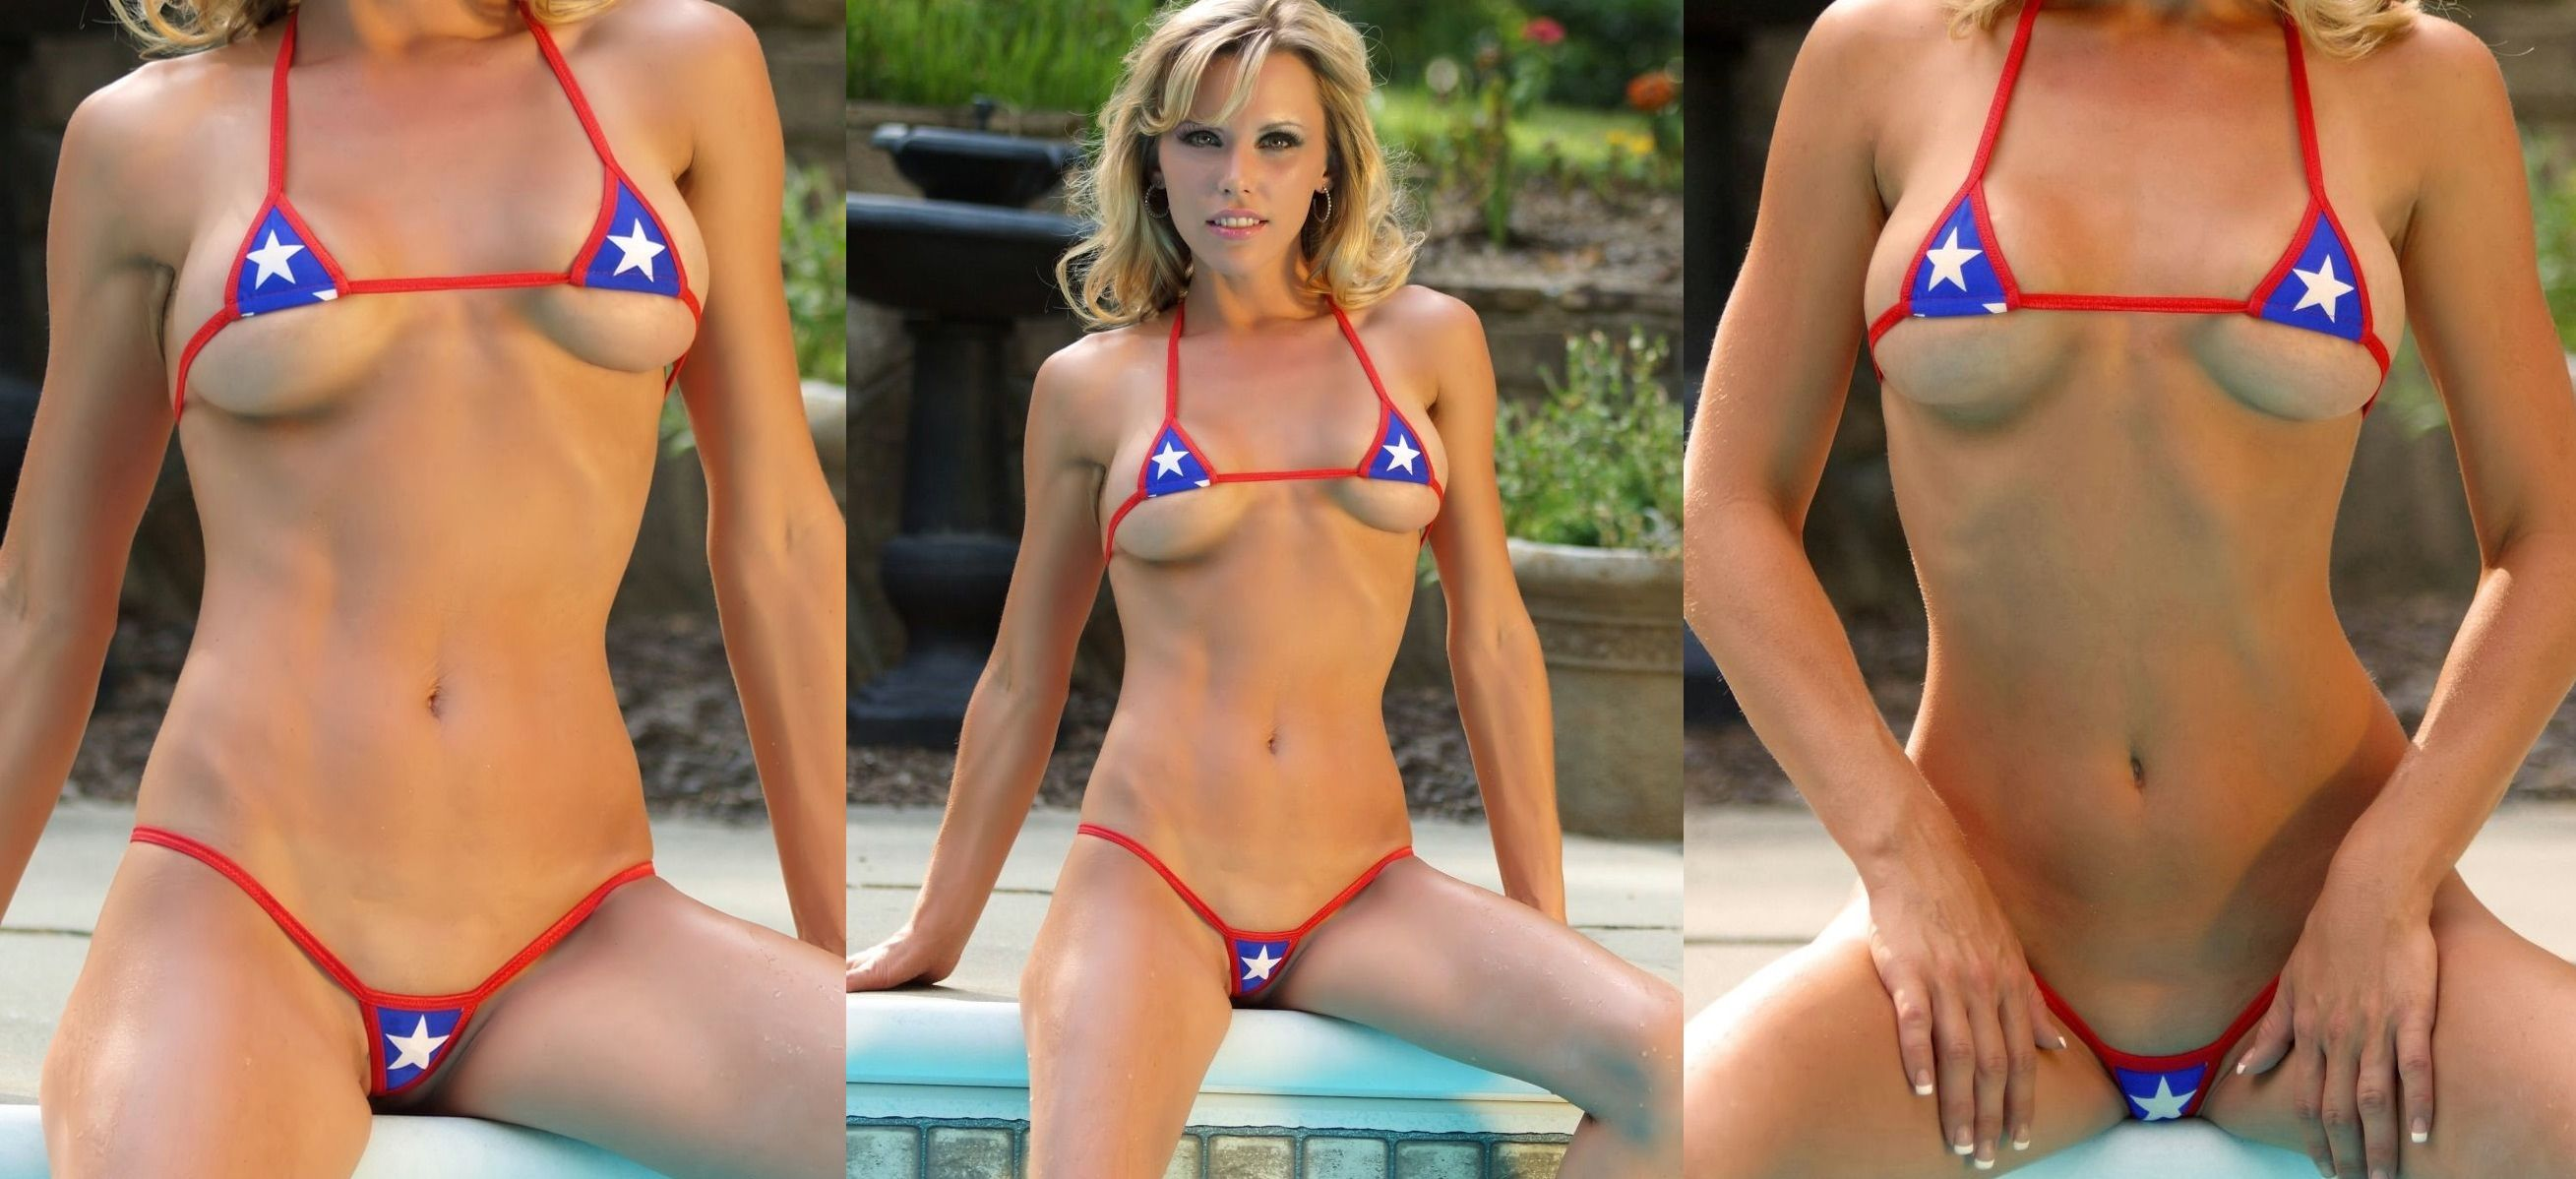 3d9ff00bad6 Texas Flag Super Micro Bikini - Devious Designs & Amped Fitness - Modeling  opportunities. Name brands, custom designs of swimwear, fitness, and  clubwear.